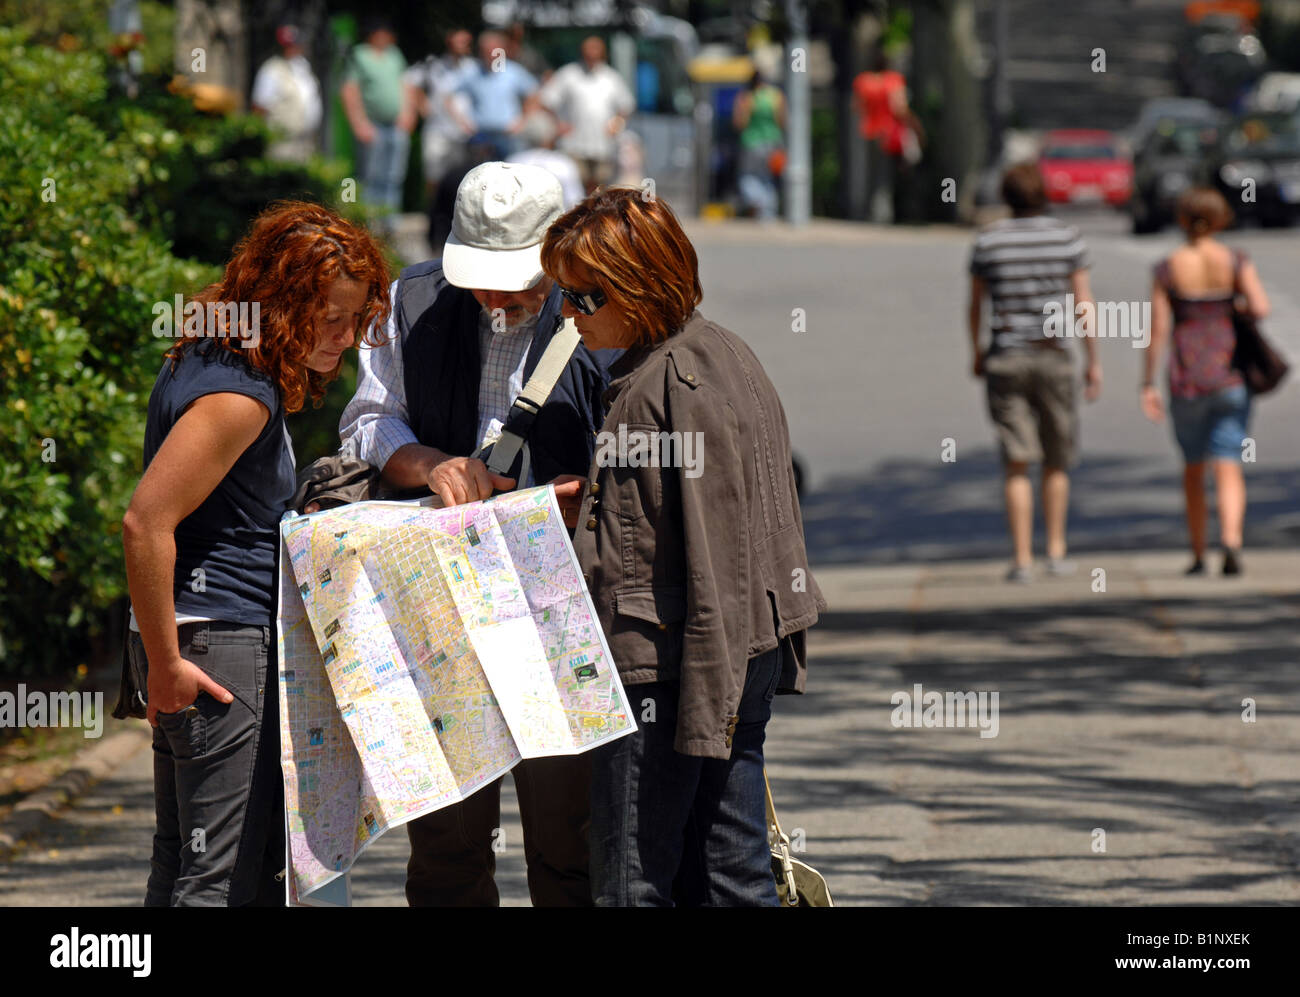 Map Of Spain For Tourists.Tourists Reading A Map Barcelona Spain Stock Photo 18306811 Alamy